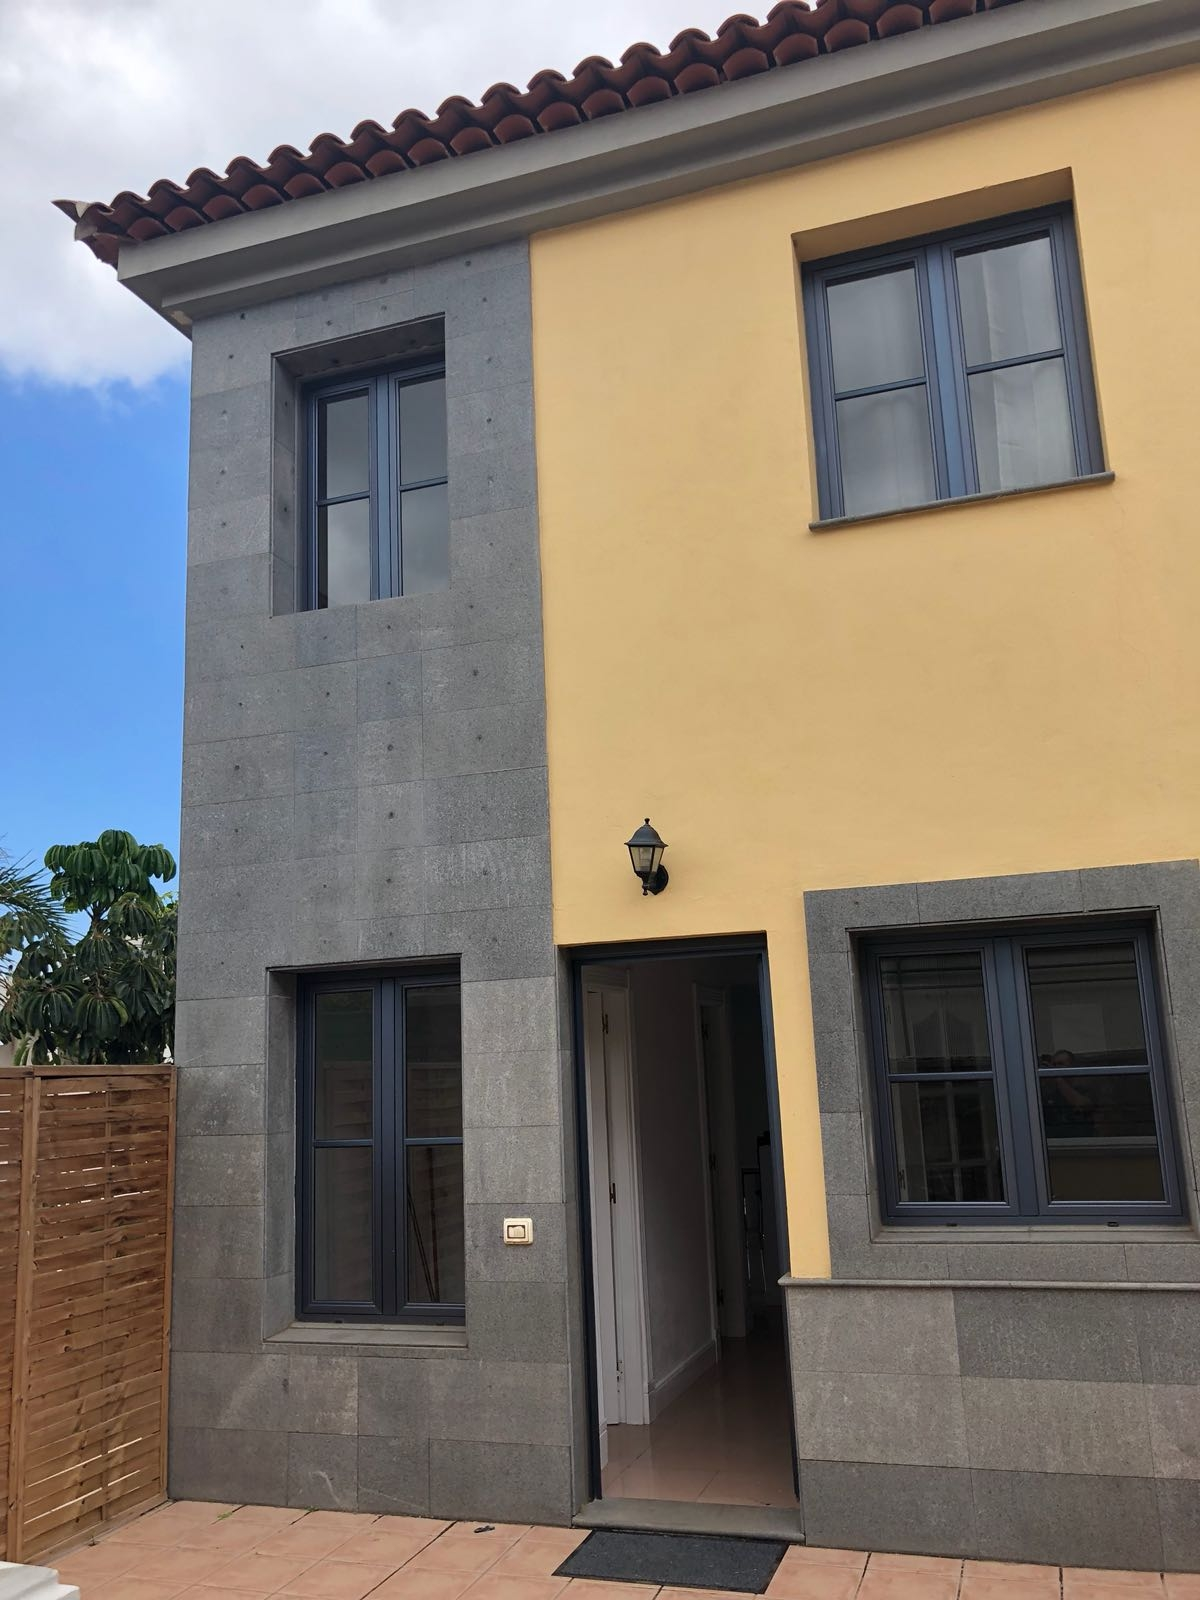 [AD-107] Townhouse 3 Bedrooms in Madroñal